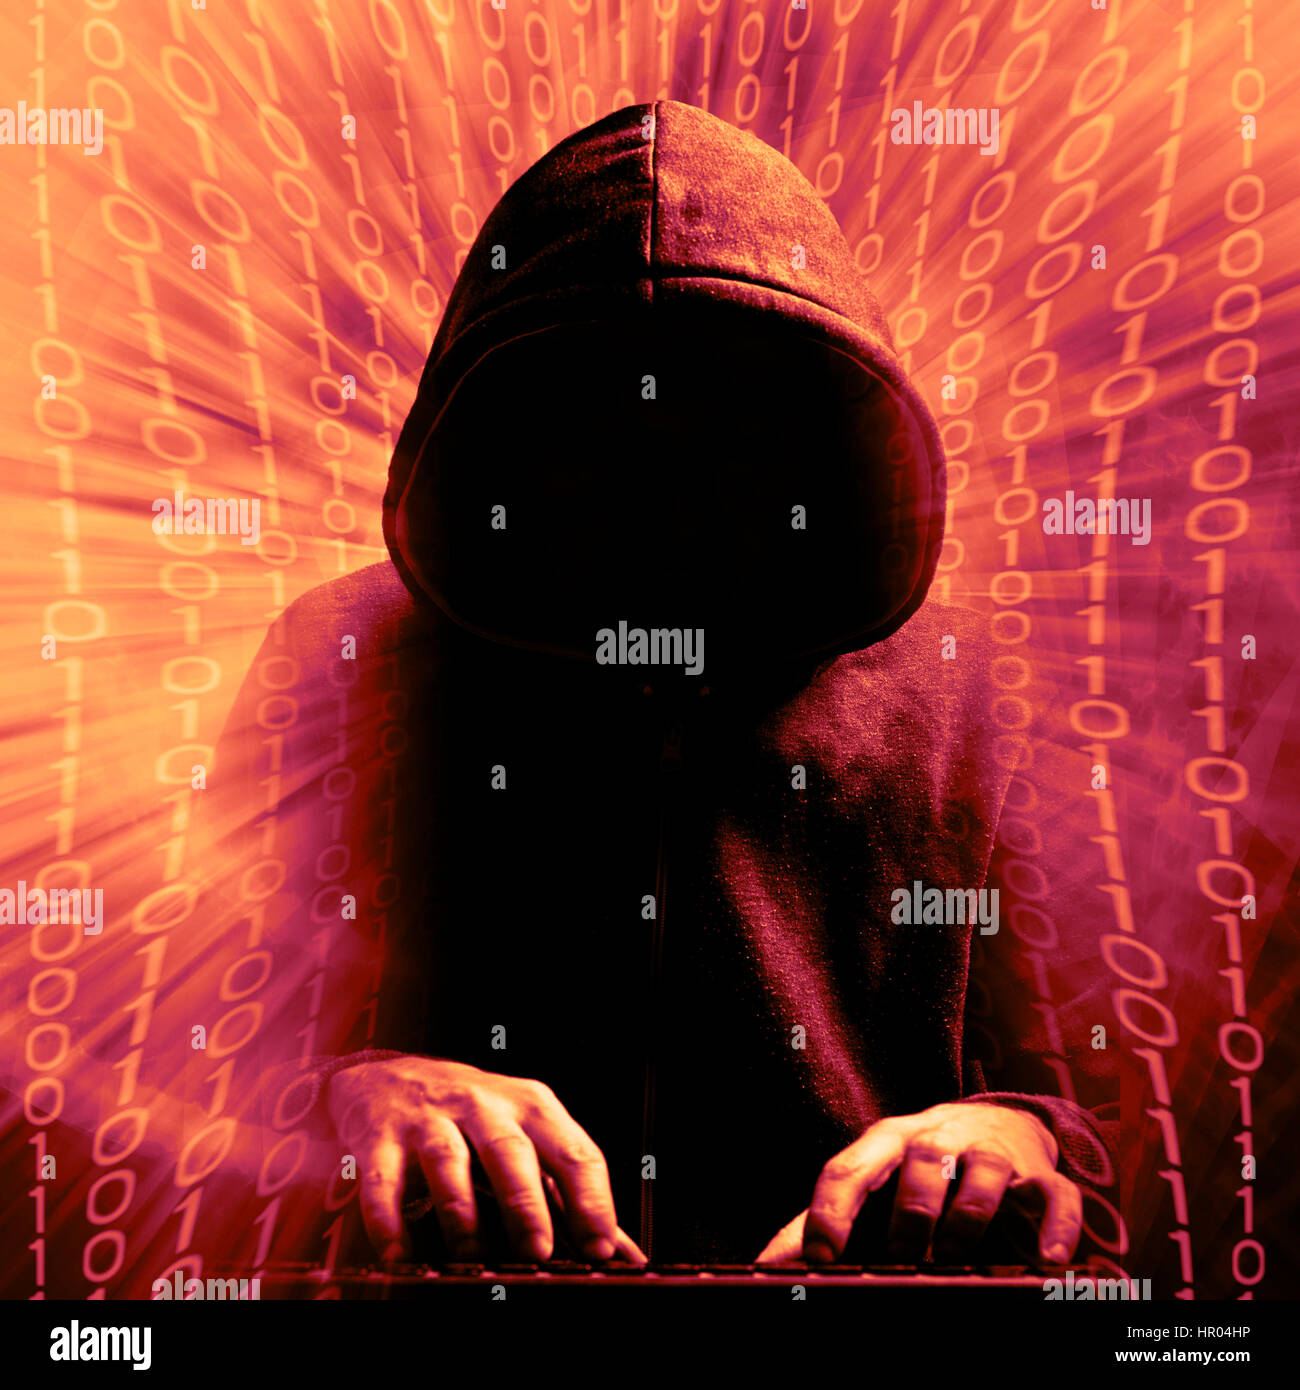 hacker in action, cybercrime concept - Stock Image